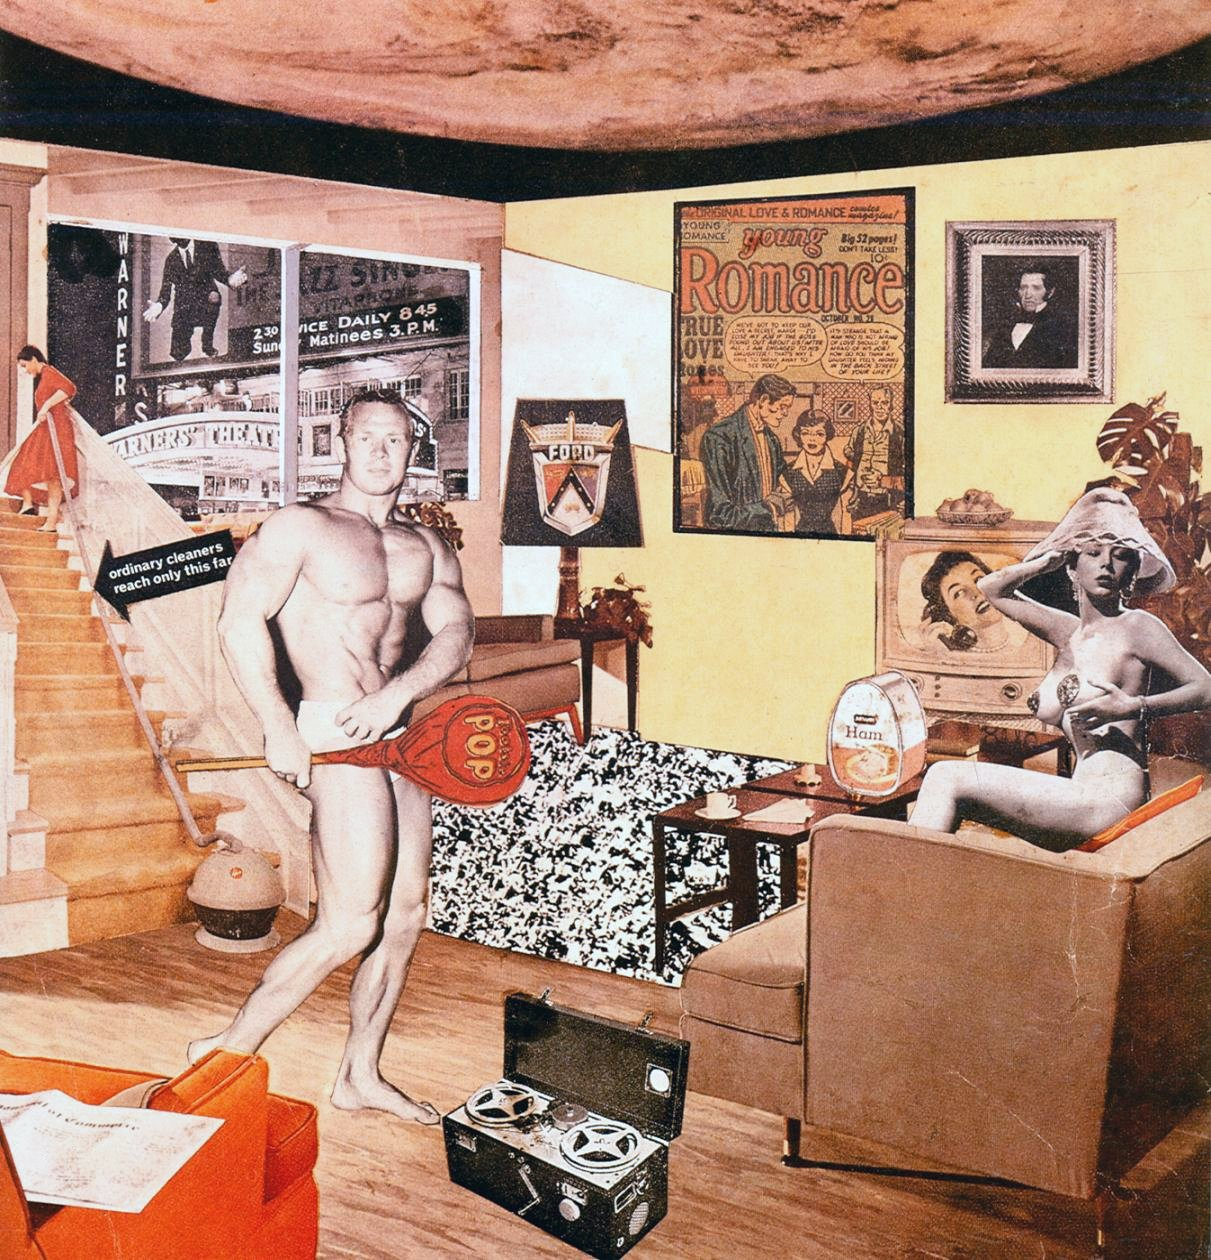 'Just what is it that makes today's homes so different, so appealing?'. Richard Hamilton